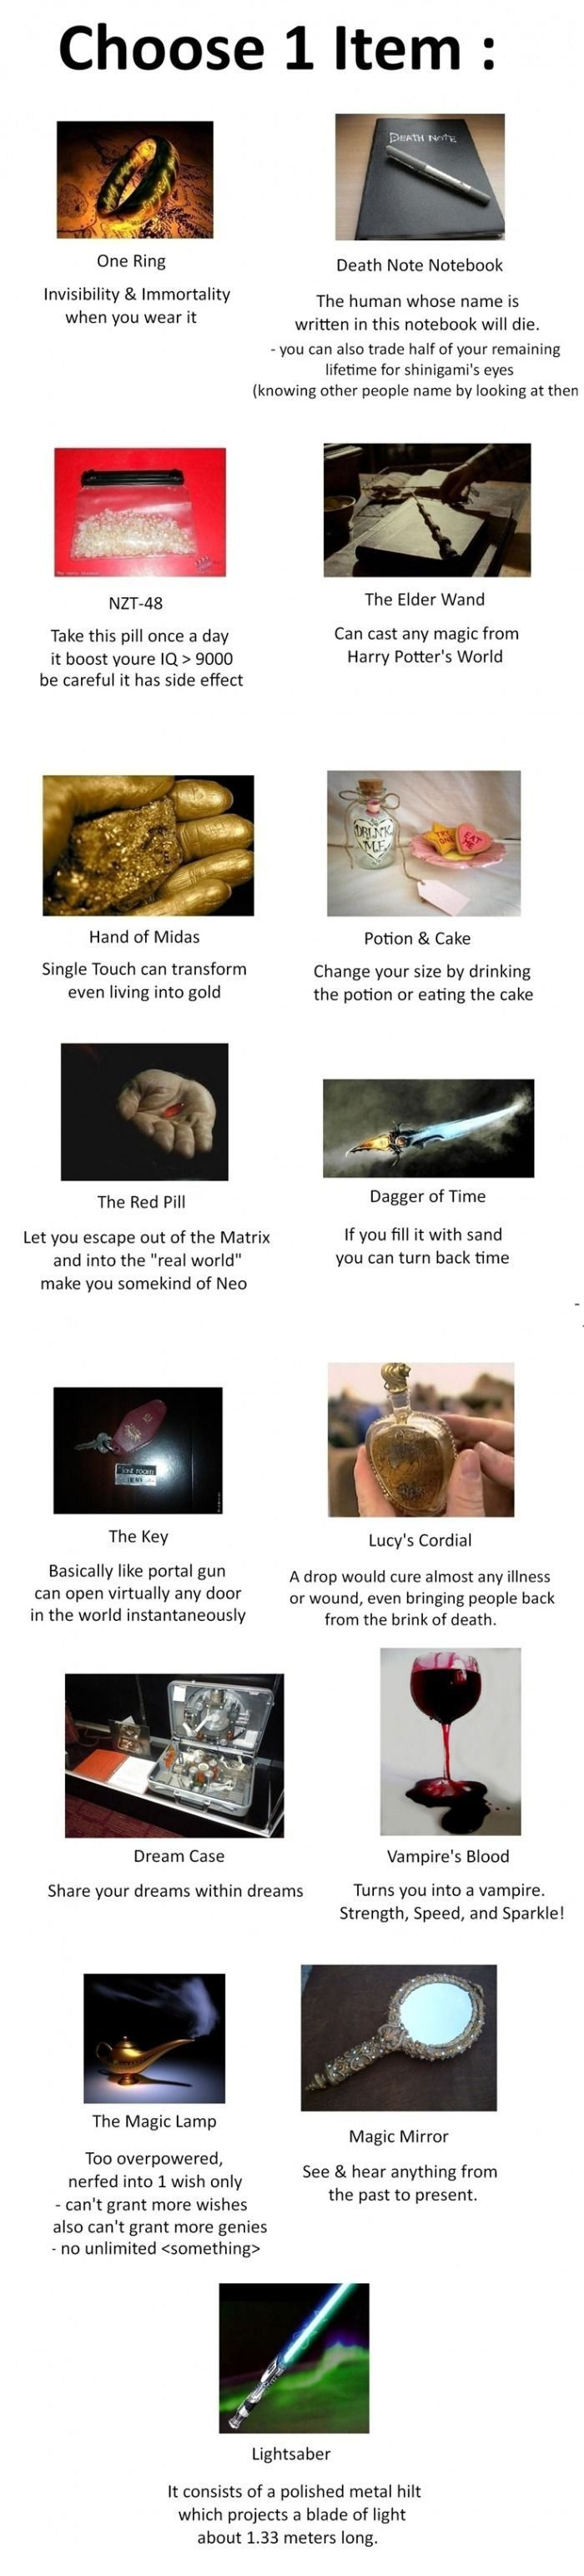 I'm between the Death Note and the Elder Wand